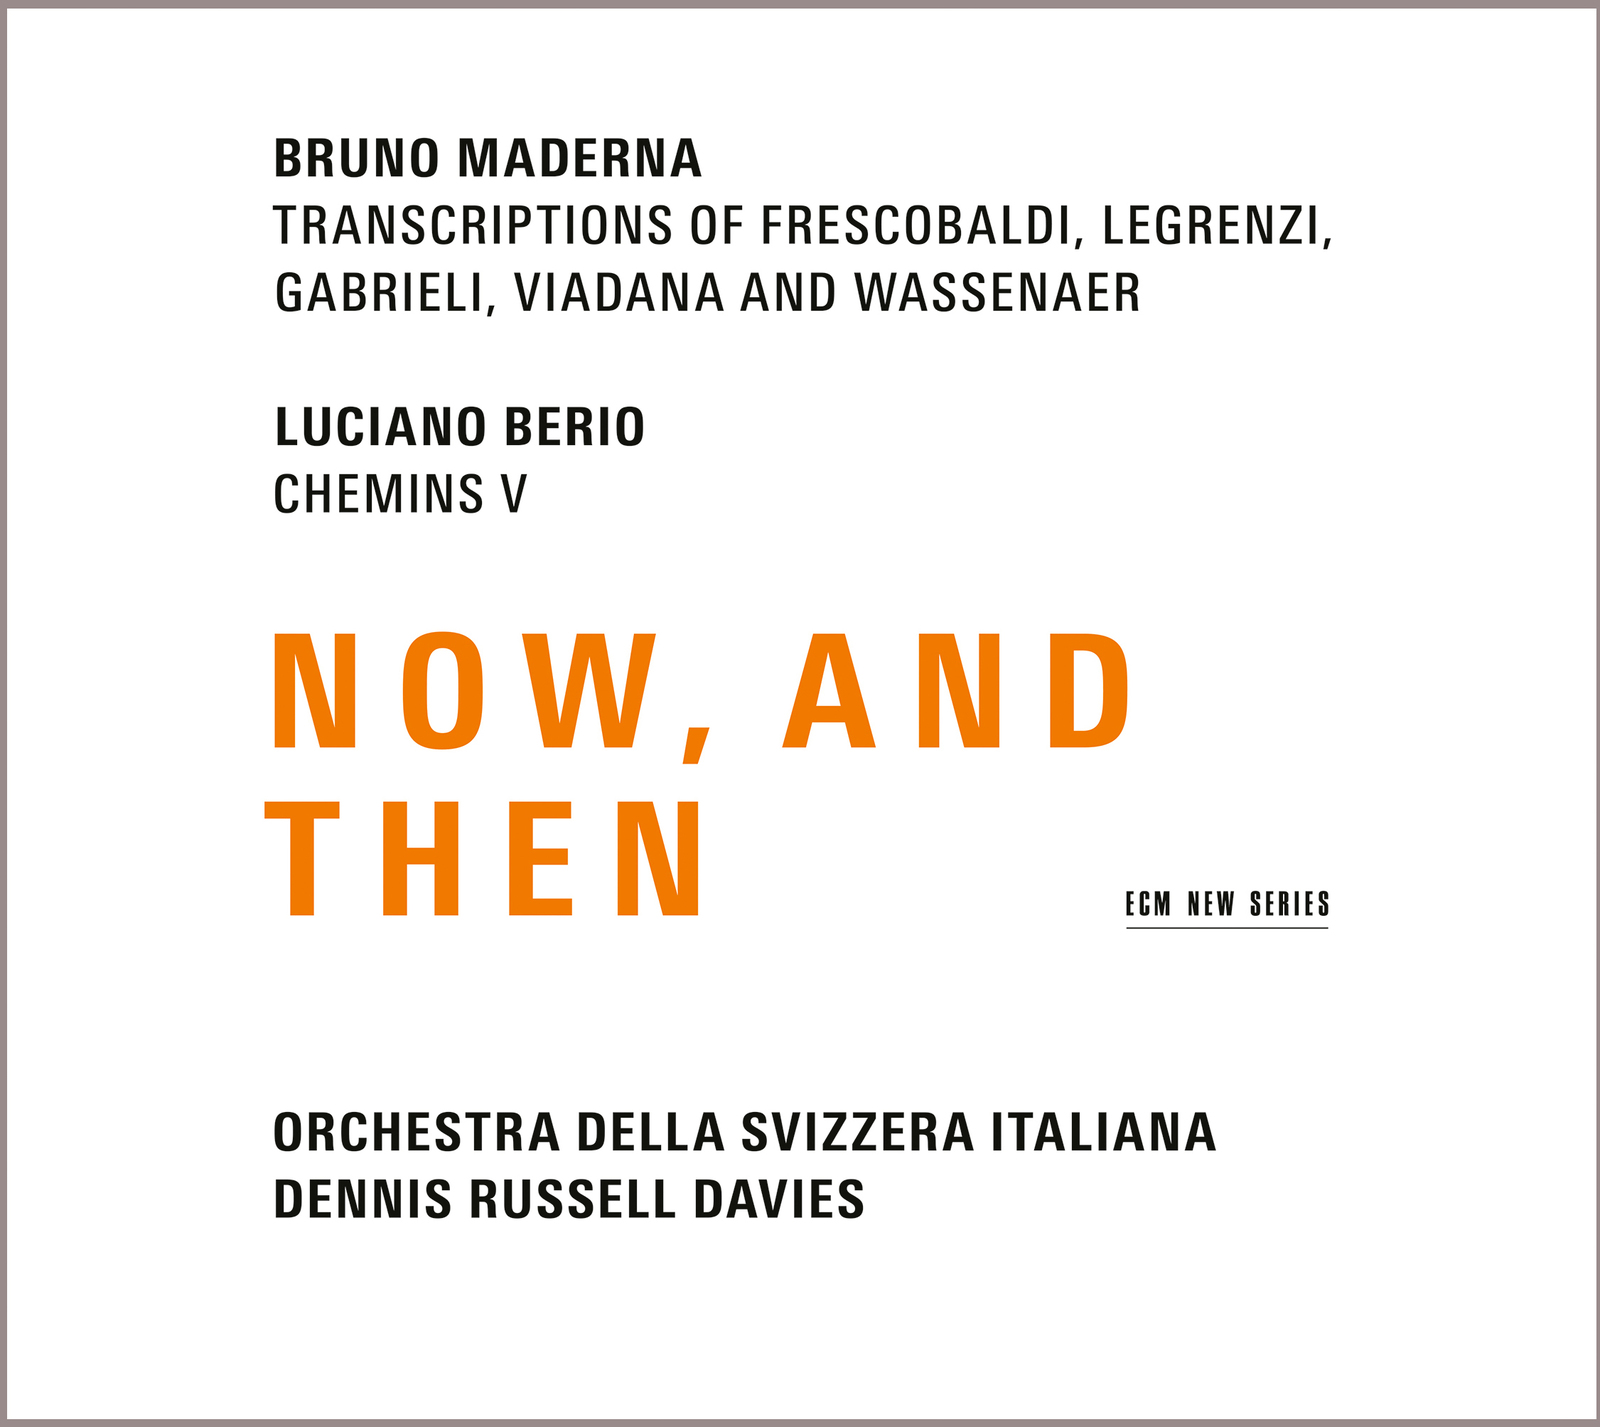 Bruno Maderna, Maderna, Now and then, Orchester, Musik, Hoffmeister